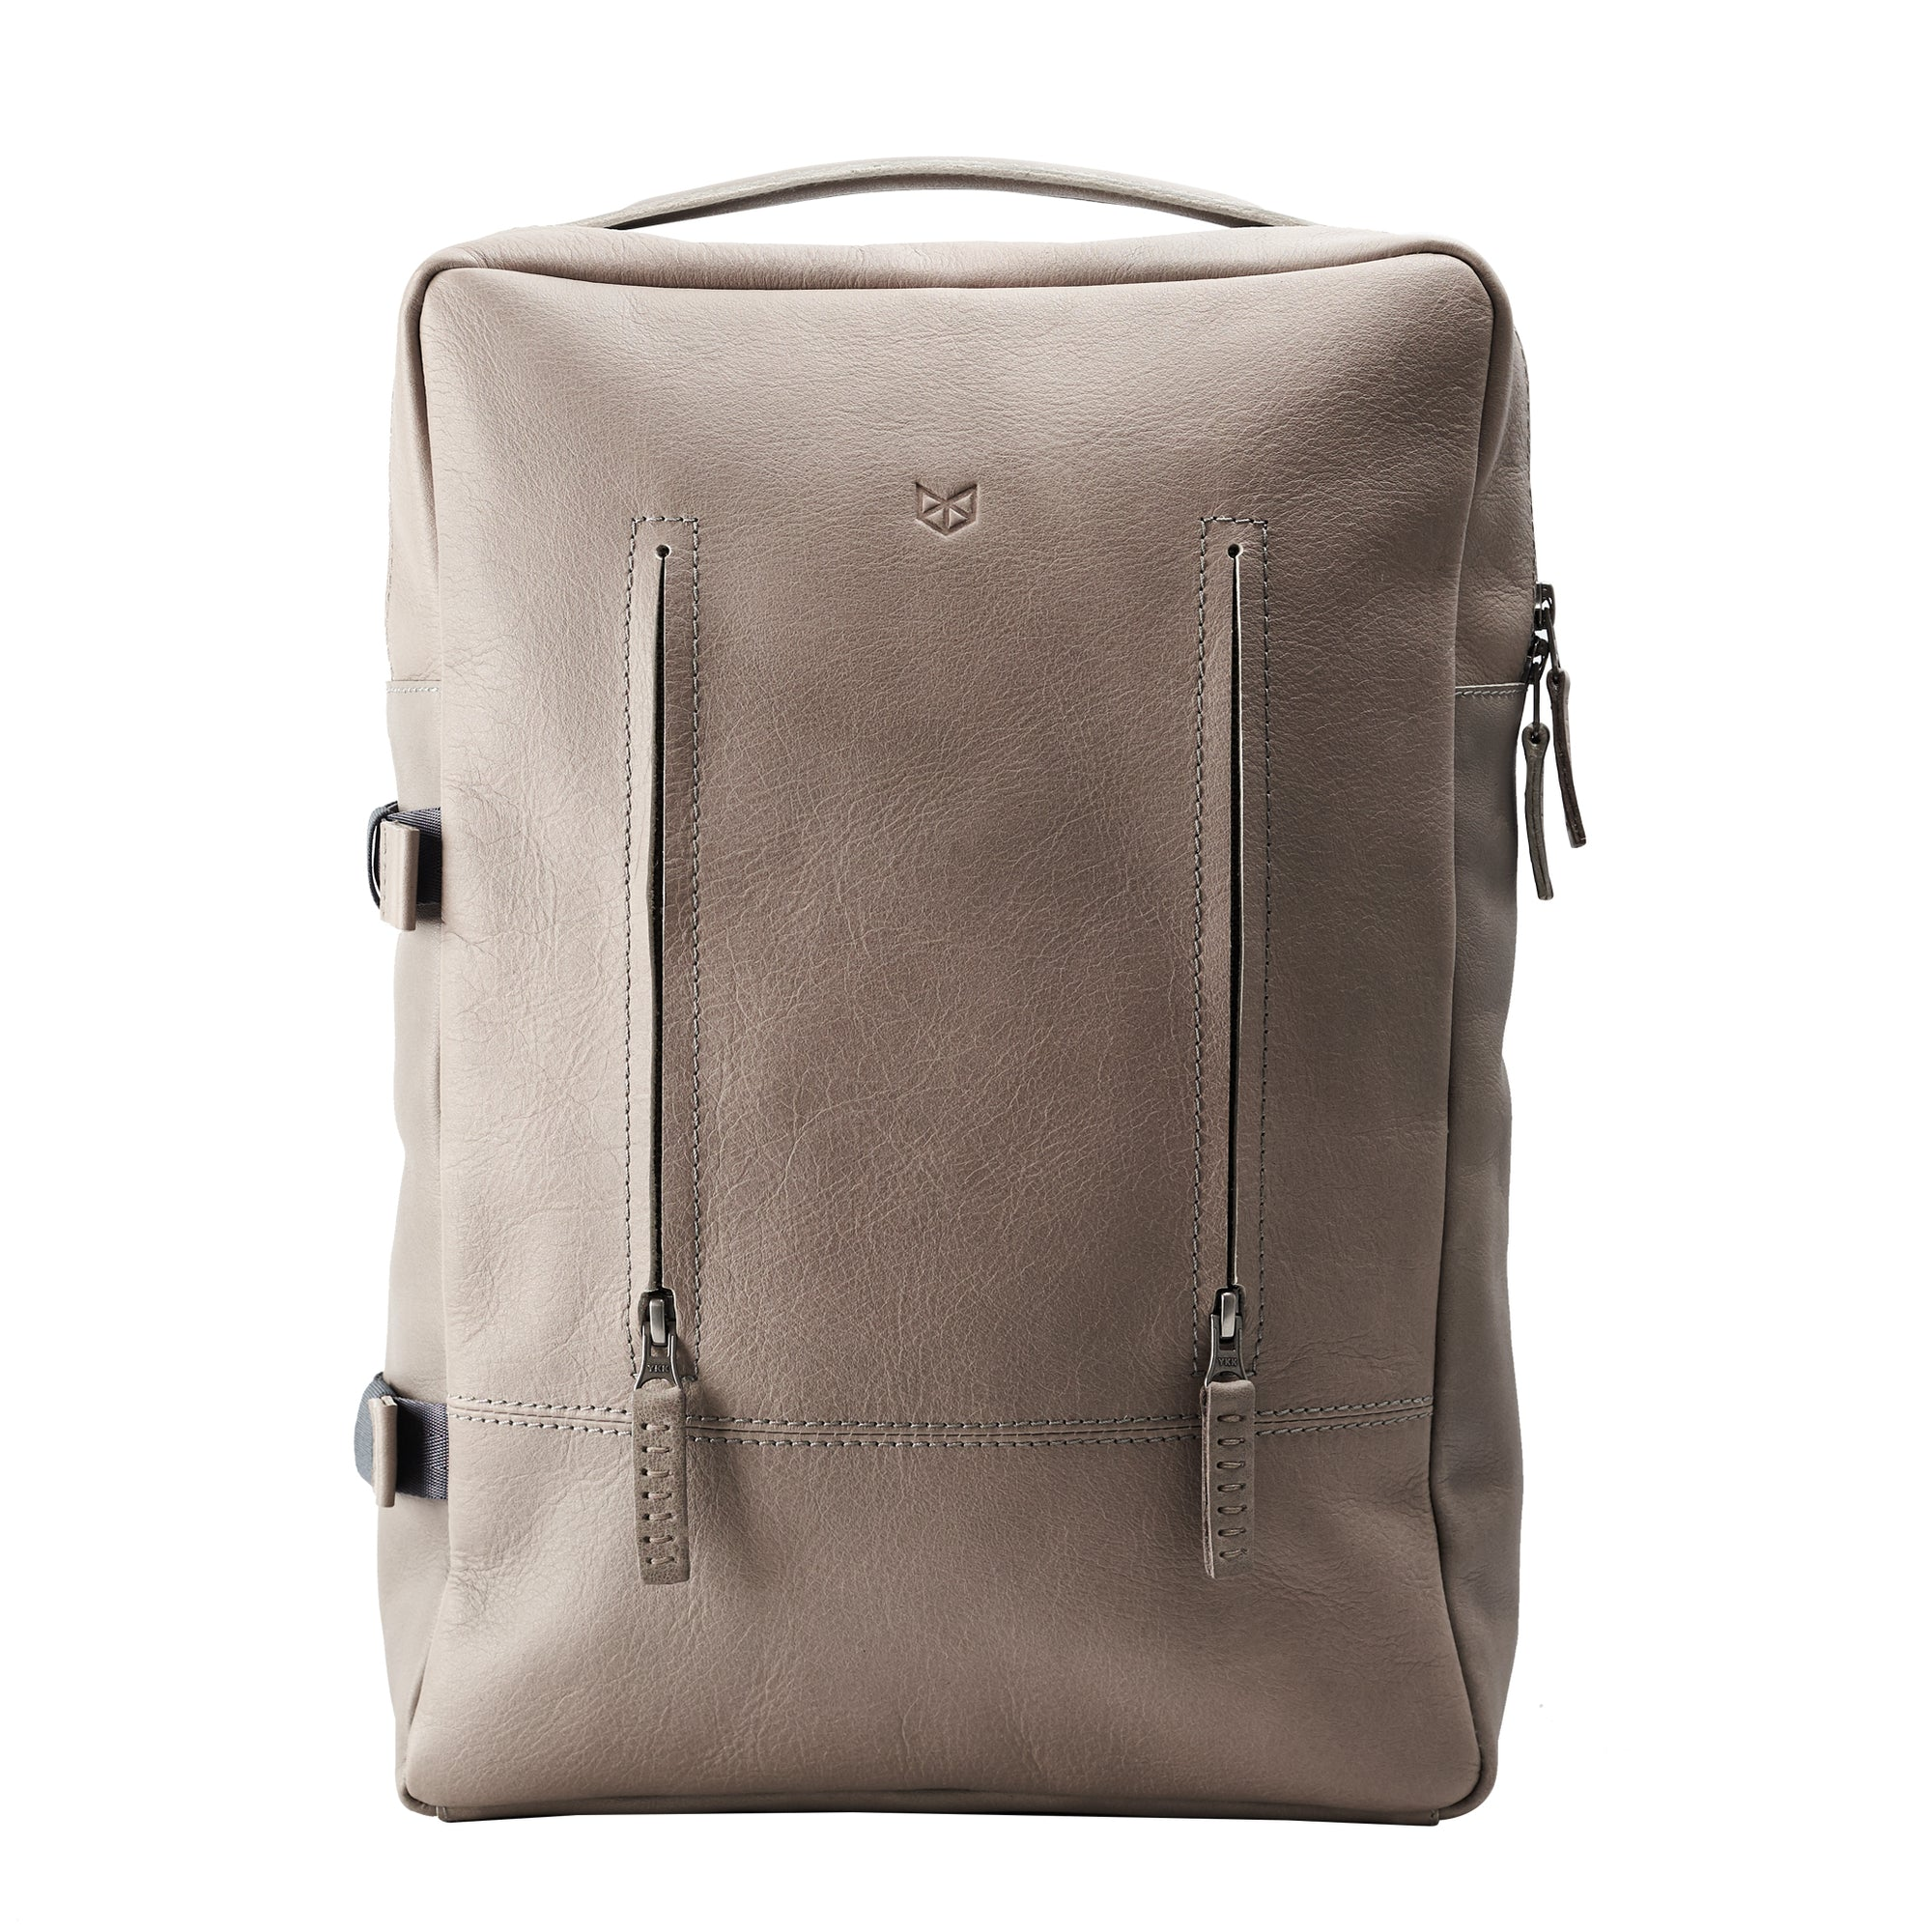 Cool Gray leather backpack for men. Minimalist style rucksack for mens gifts